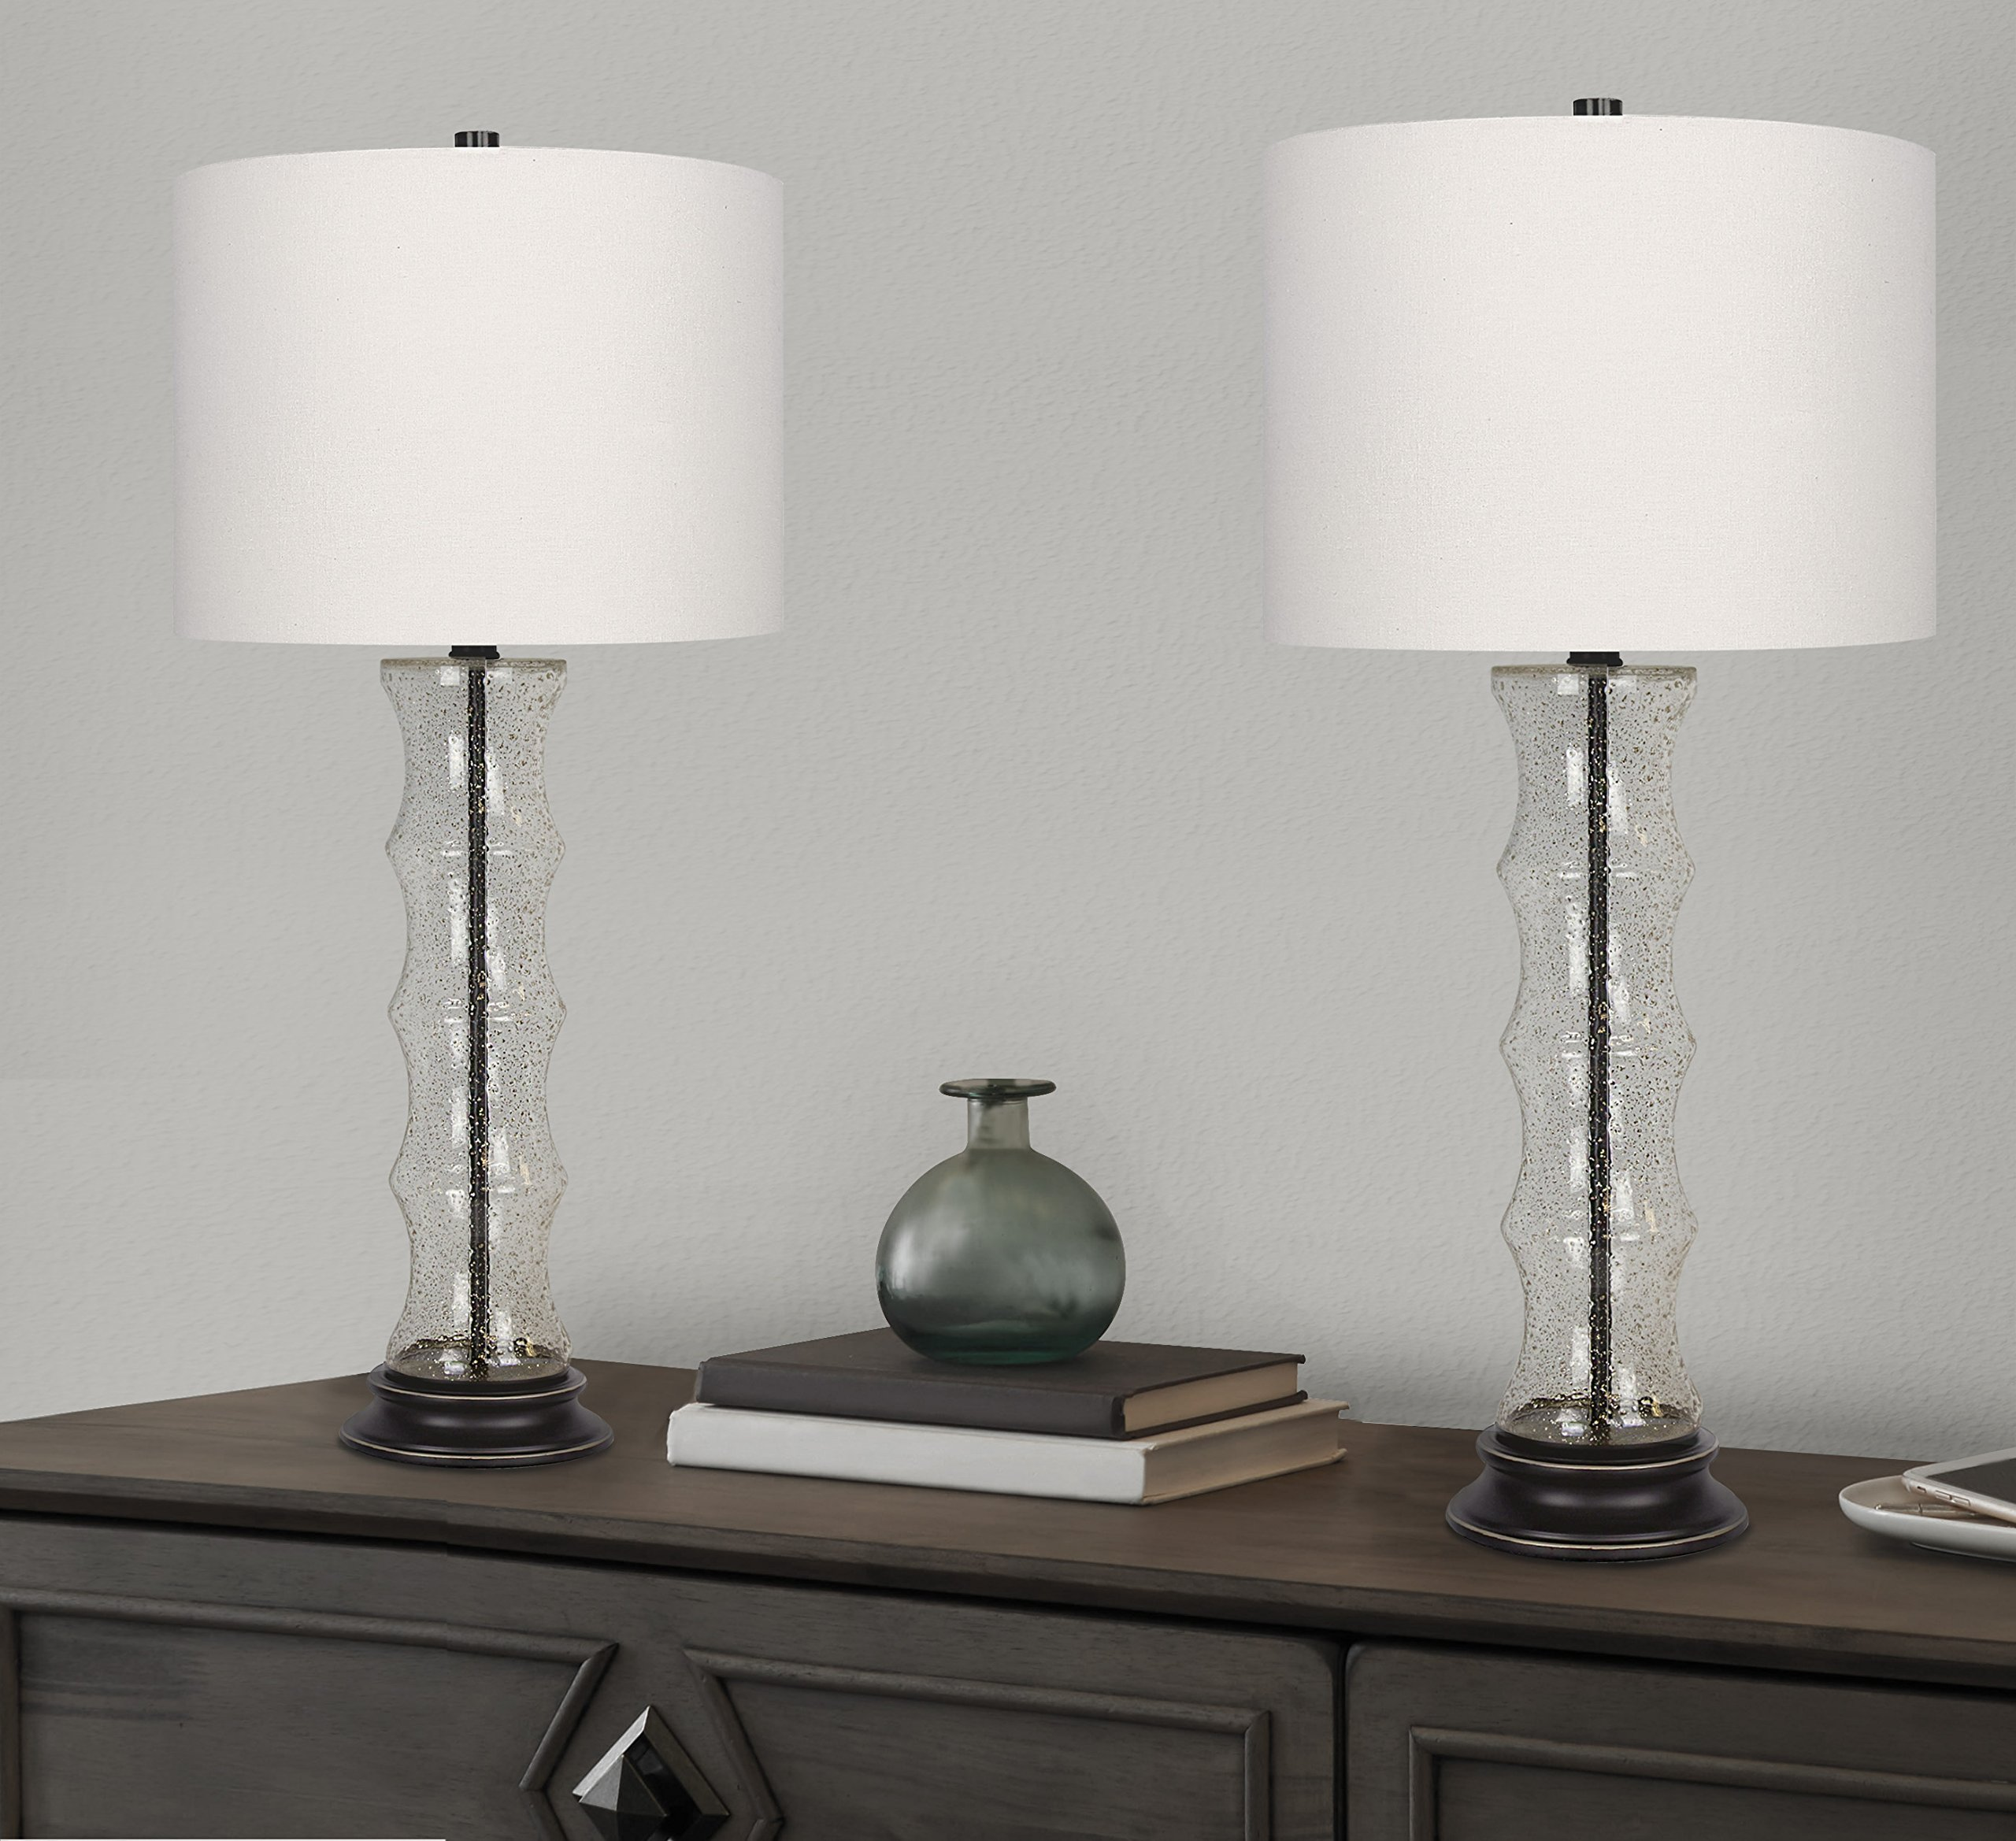 Grandview Gallery 29'' Desert Glass Lamp Set ft. Textured Glass Embedded with Gold Sand, Oil-Rubbed Bronze Details, and Off-White Linen Drum Shades - Perfect for Nightstands and End Tables (Set of 2) by Grandview Gallery (Image #3)